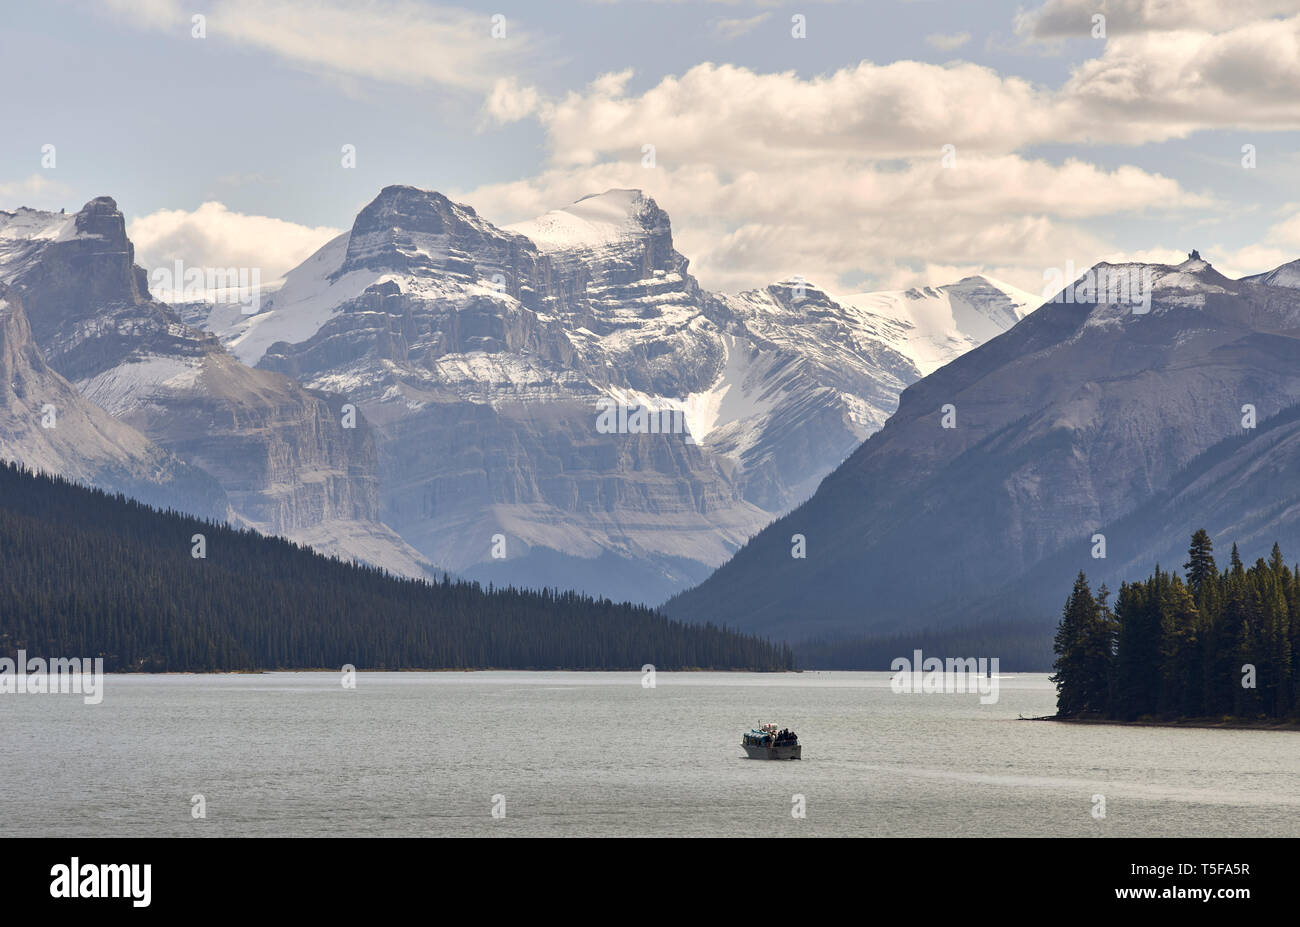 Canada, Alberta, Jasper National Park, Maligne Mountain, boat on Malig - Stock Image